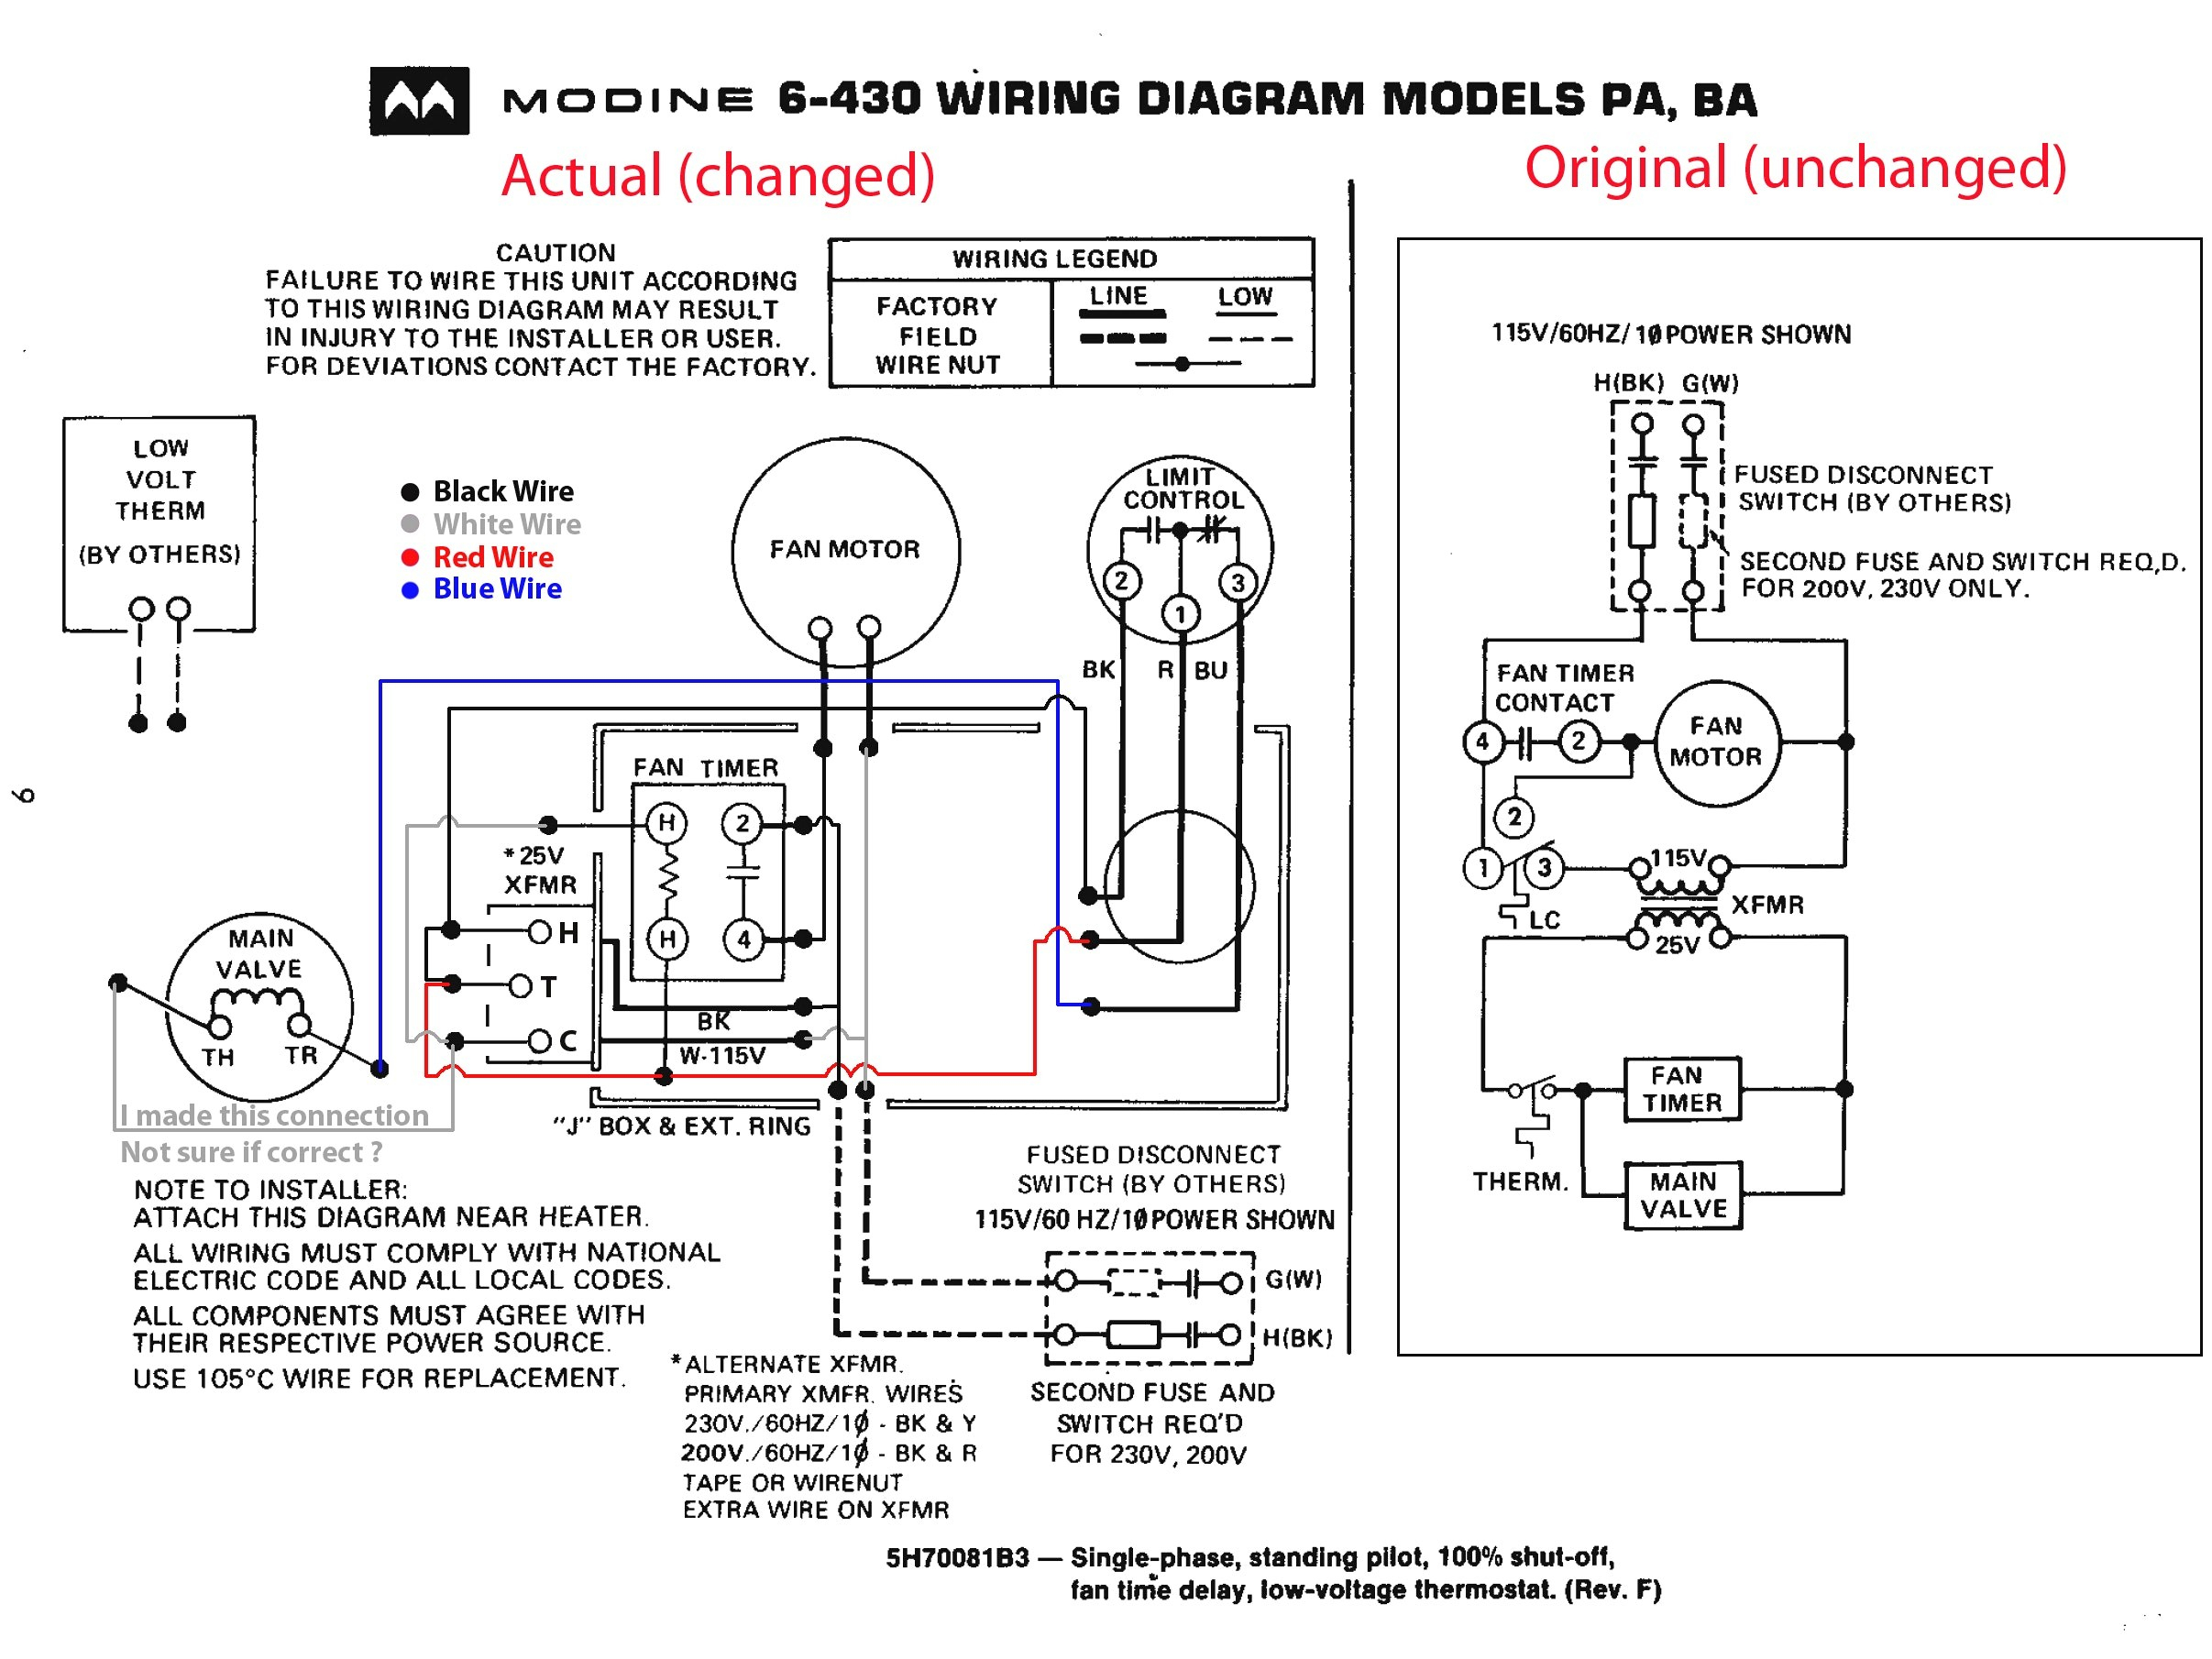 Atwood Wiring Diagram. atwood rv water heater wiring diagram free wiring  diagram. atwood water heater wiring diagram download. atwood gc10a 4e wiring  diagram sample. find out here atwood gc10a 4e wiring diagram2002-acura-tl-radio.info